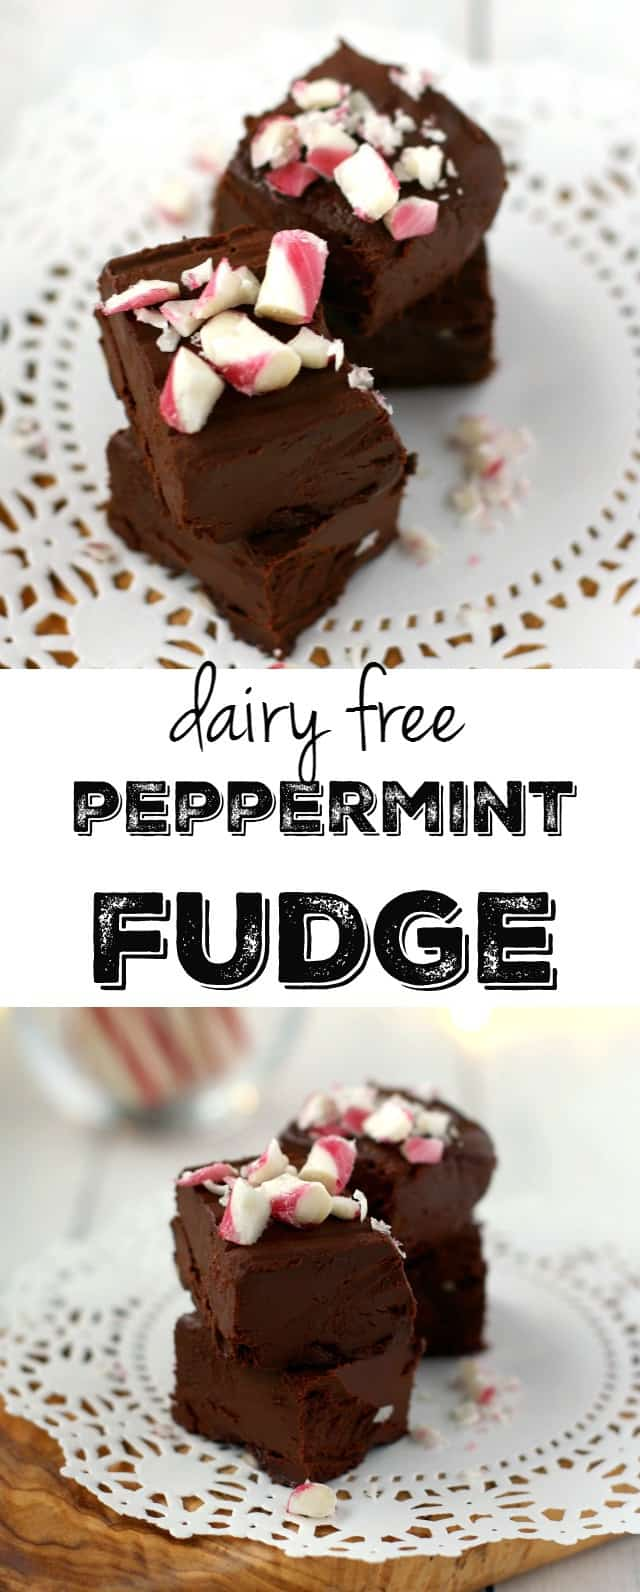 Easy dairy free peppermint fudge - a delicious and festive dessert for the holidays! This is easy to make and makes a fun gift!